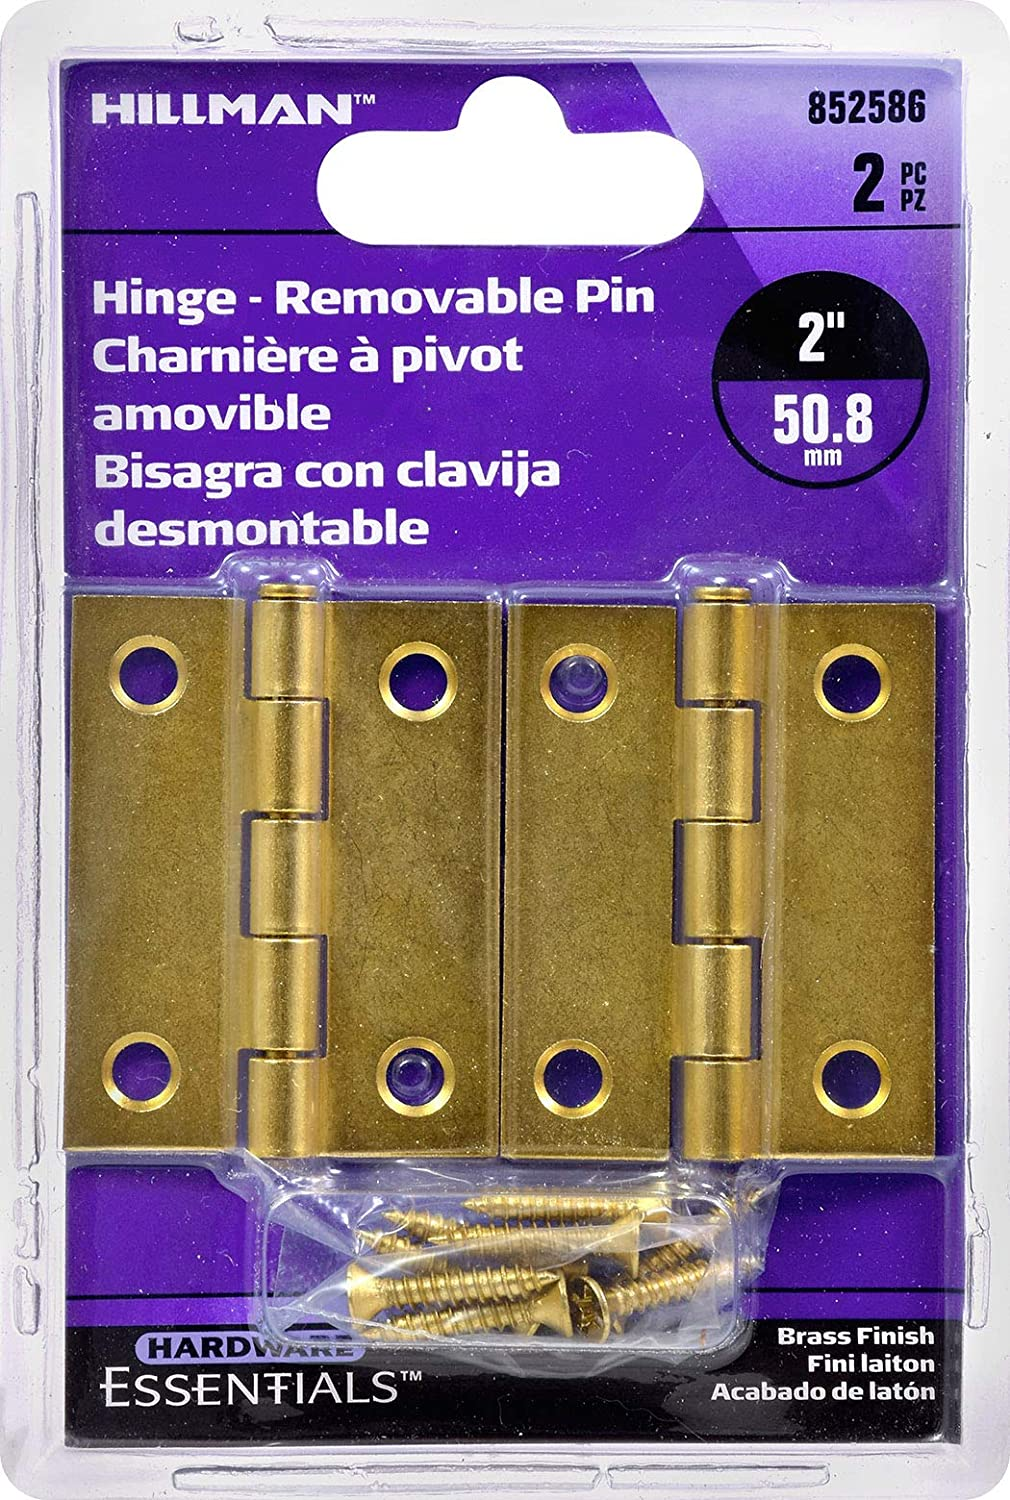 Hillman Hardware Essentials 852586 Light Narrow Door Hinges and Fixed Pin Brass 2-2 pack